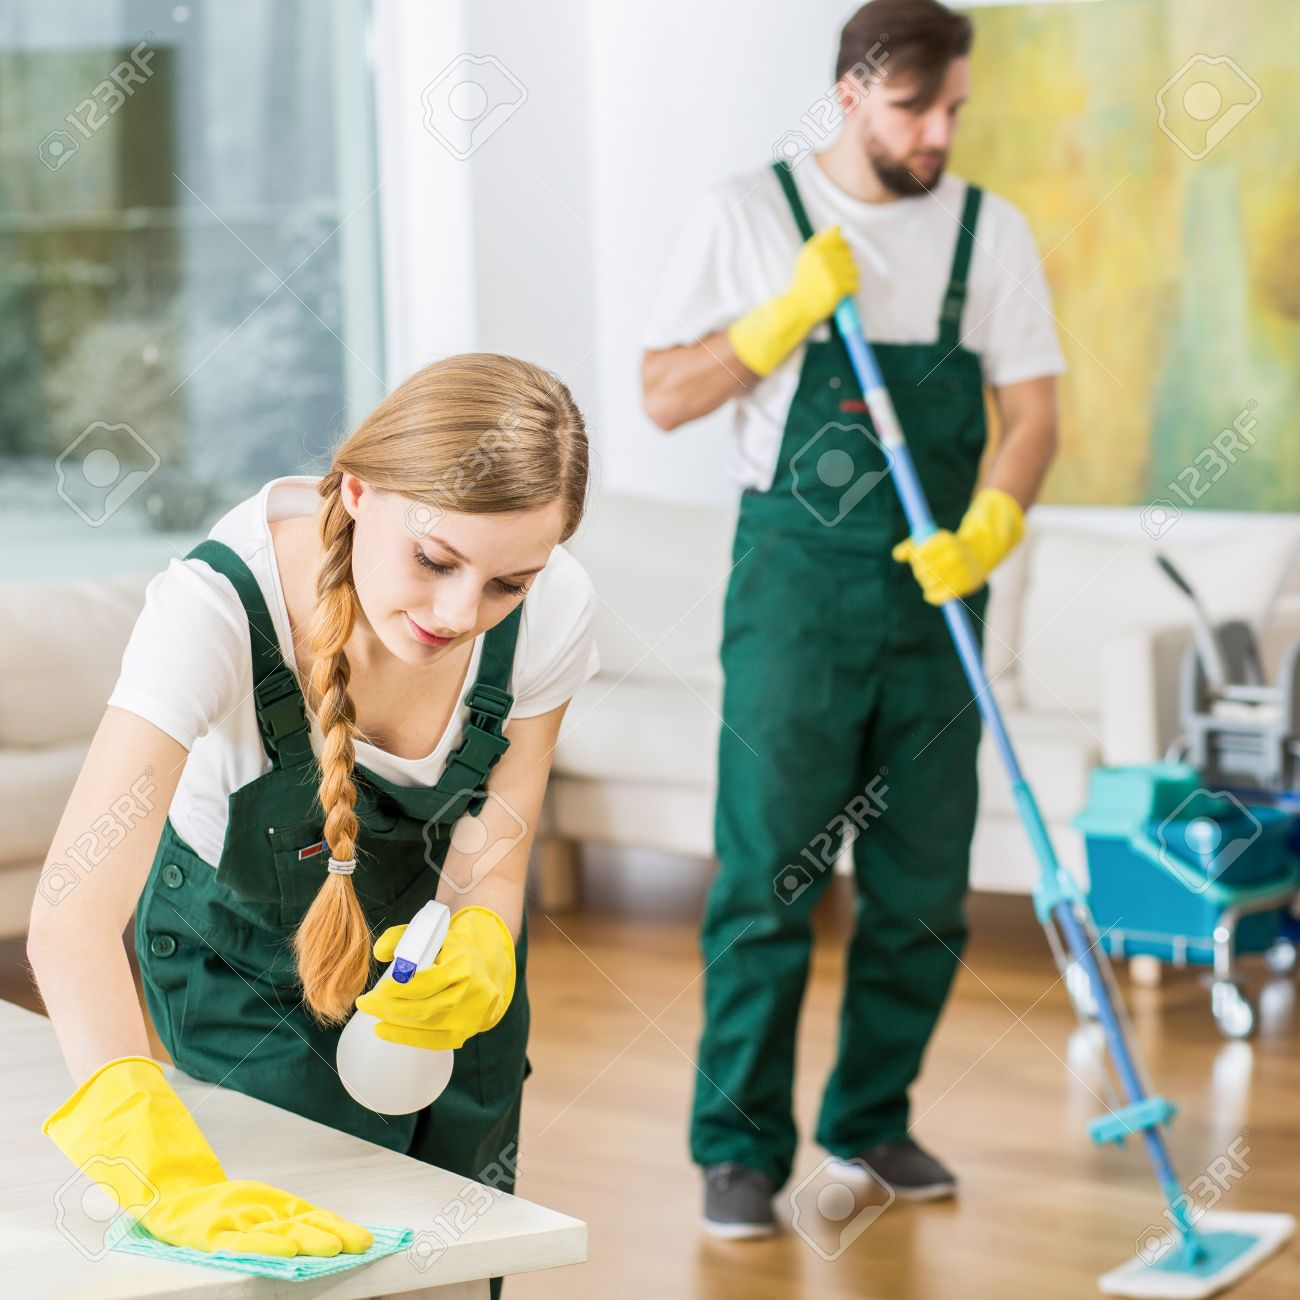 Young Professional Cleaners Cleaning Accurate Spacious Apartment. Man  Mopping The Floor And Girl Polishing The